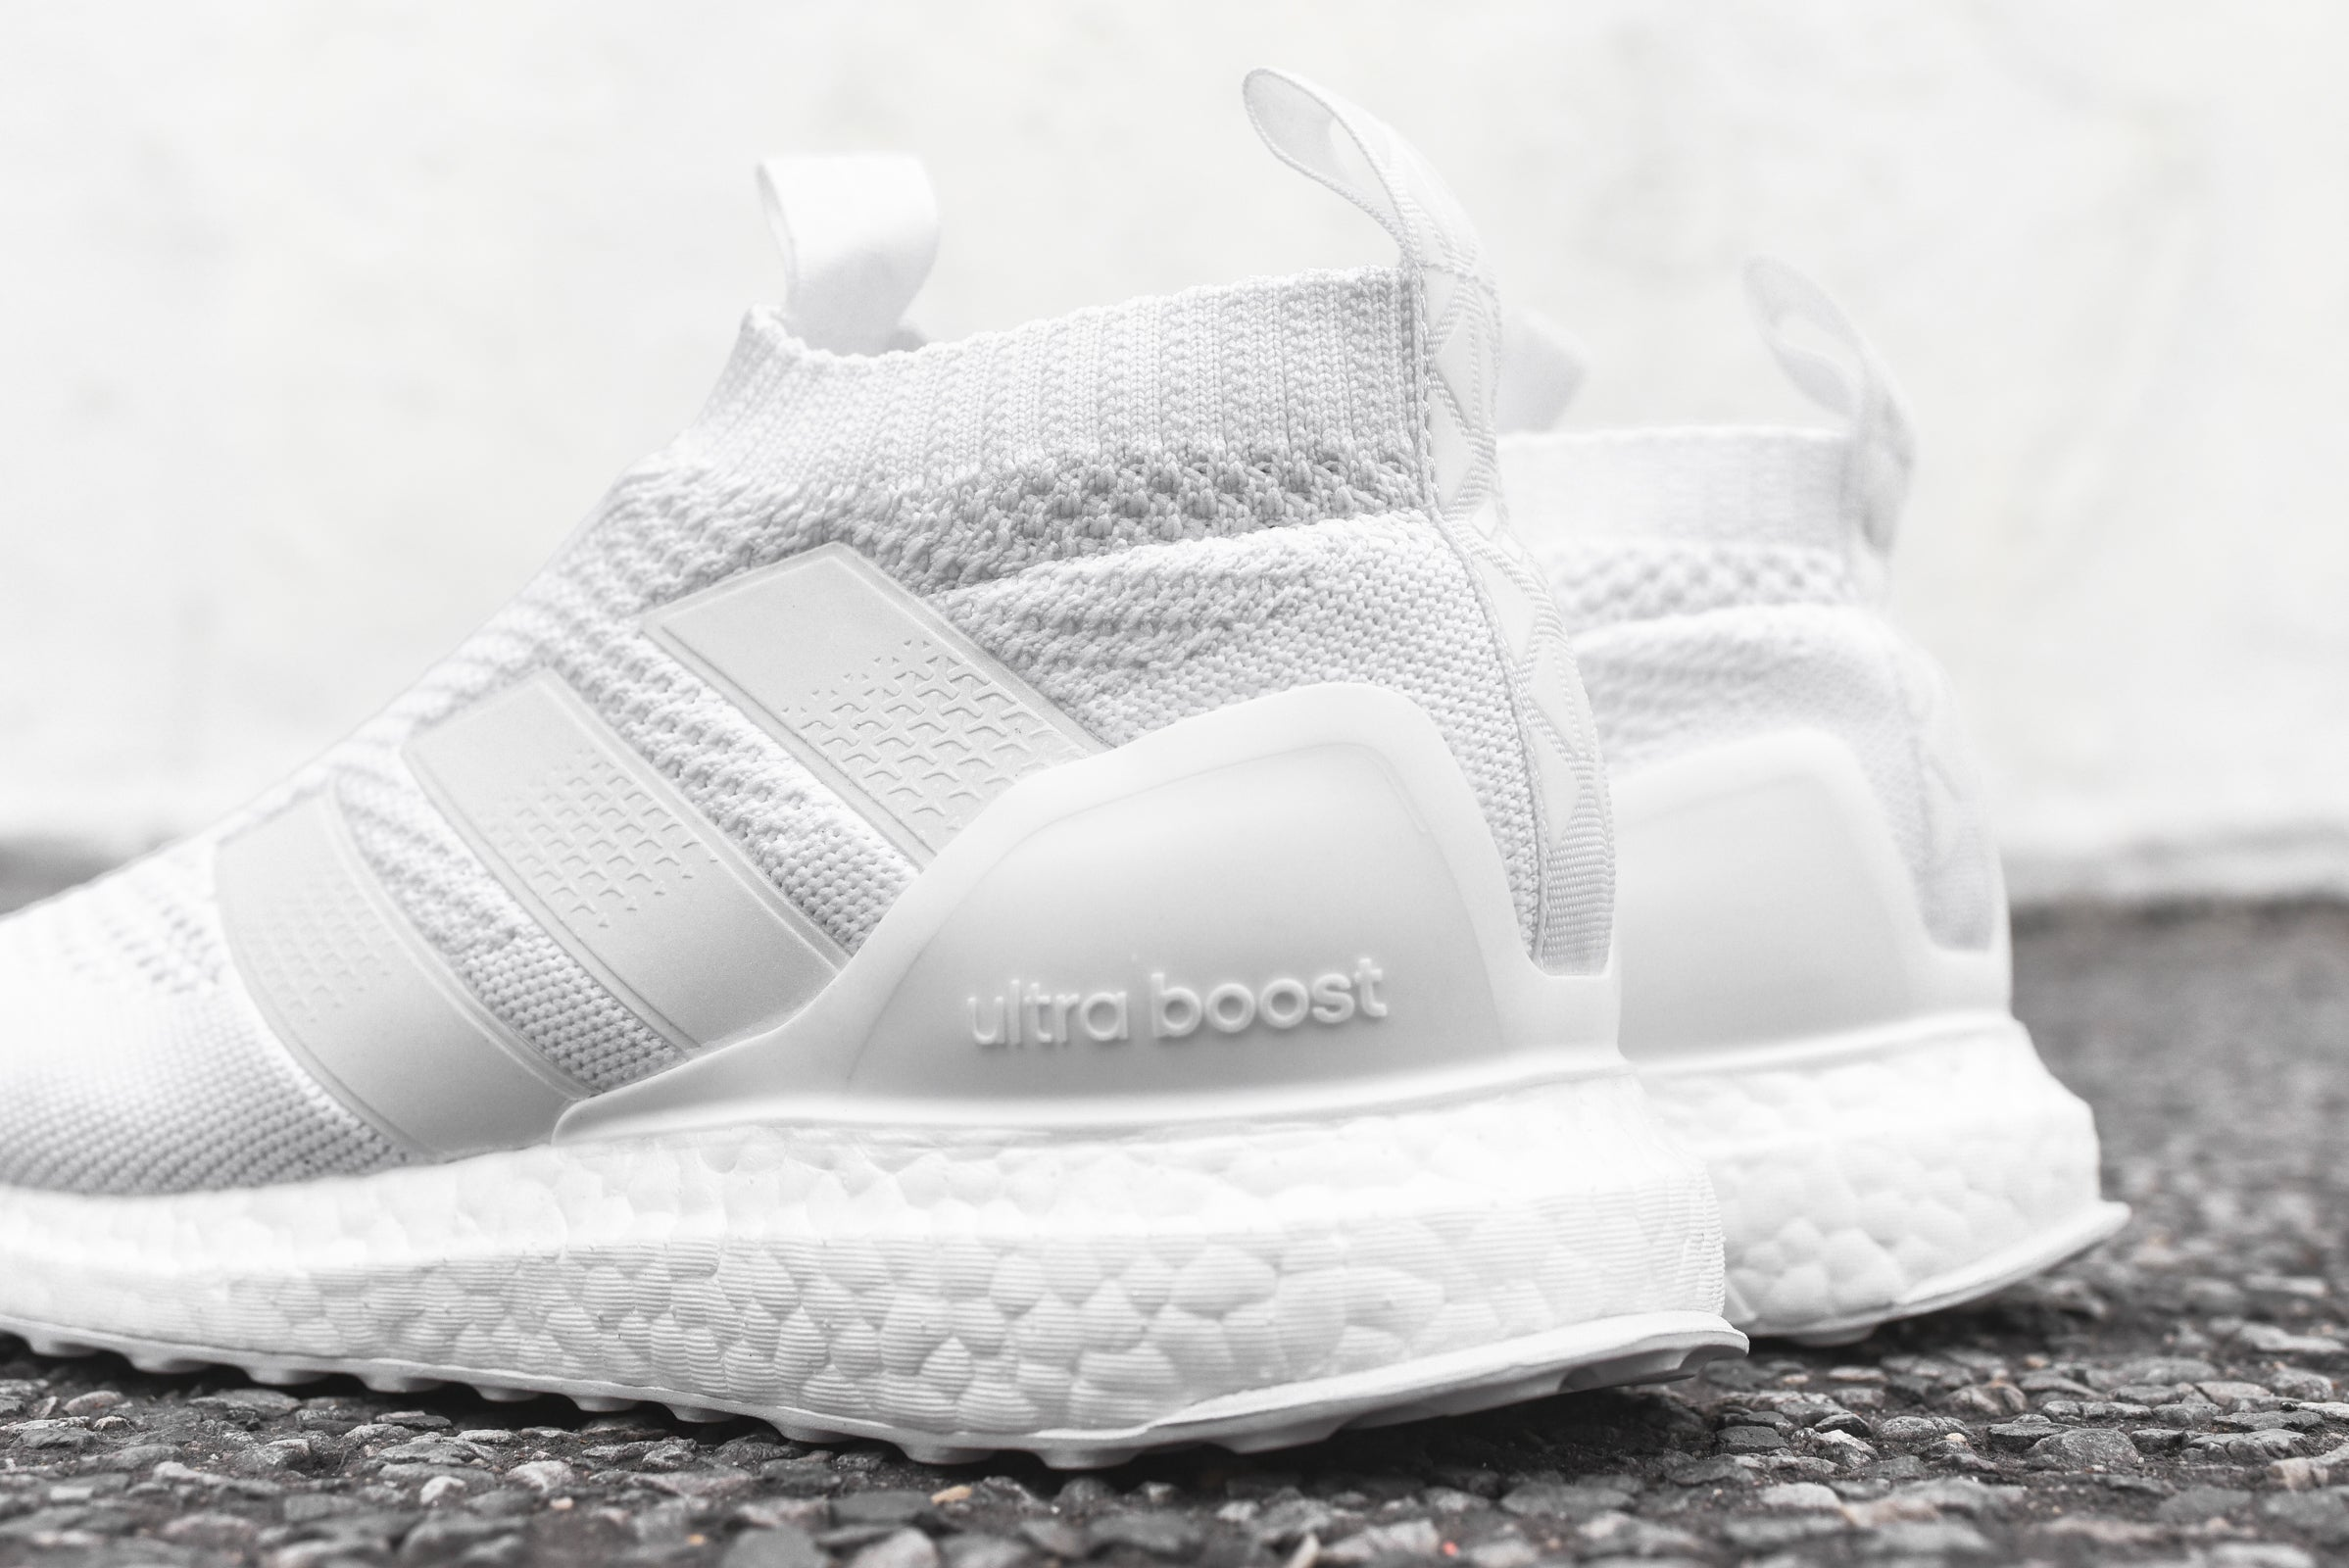 various design factory outlets exclusive deals Ultra Boost ACE 16+ Purecontrol White | syracusehousing.org